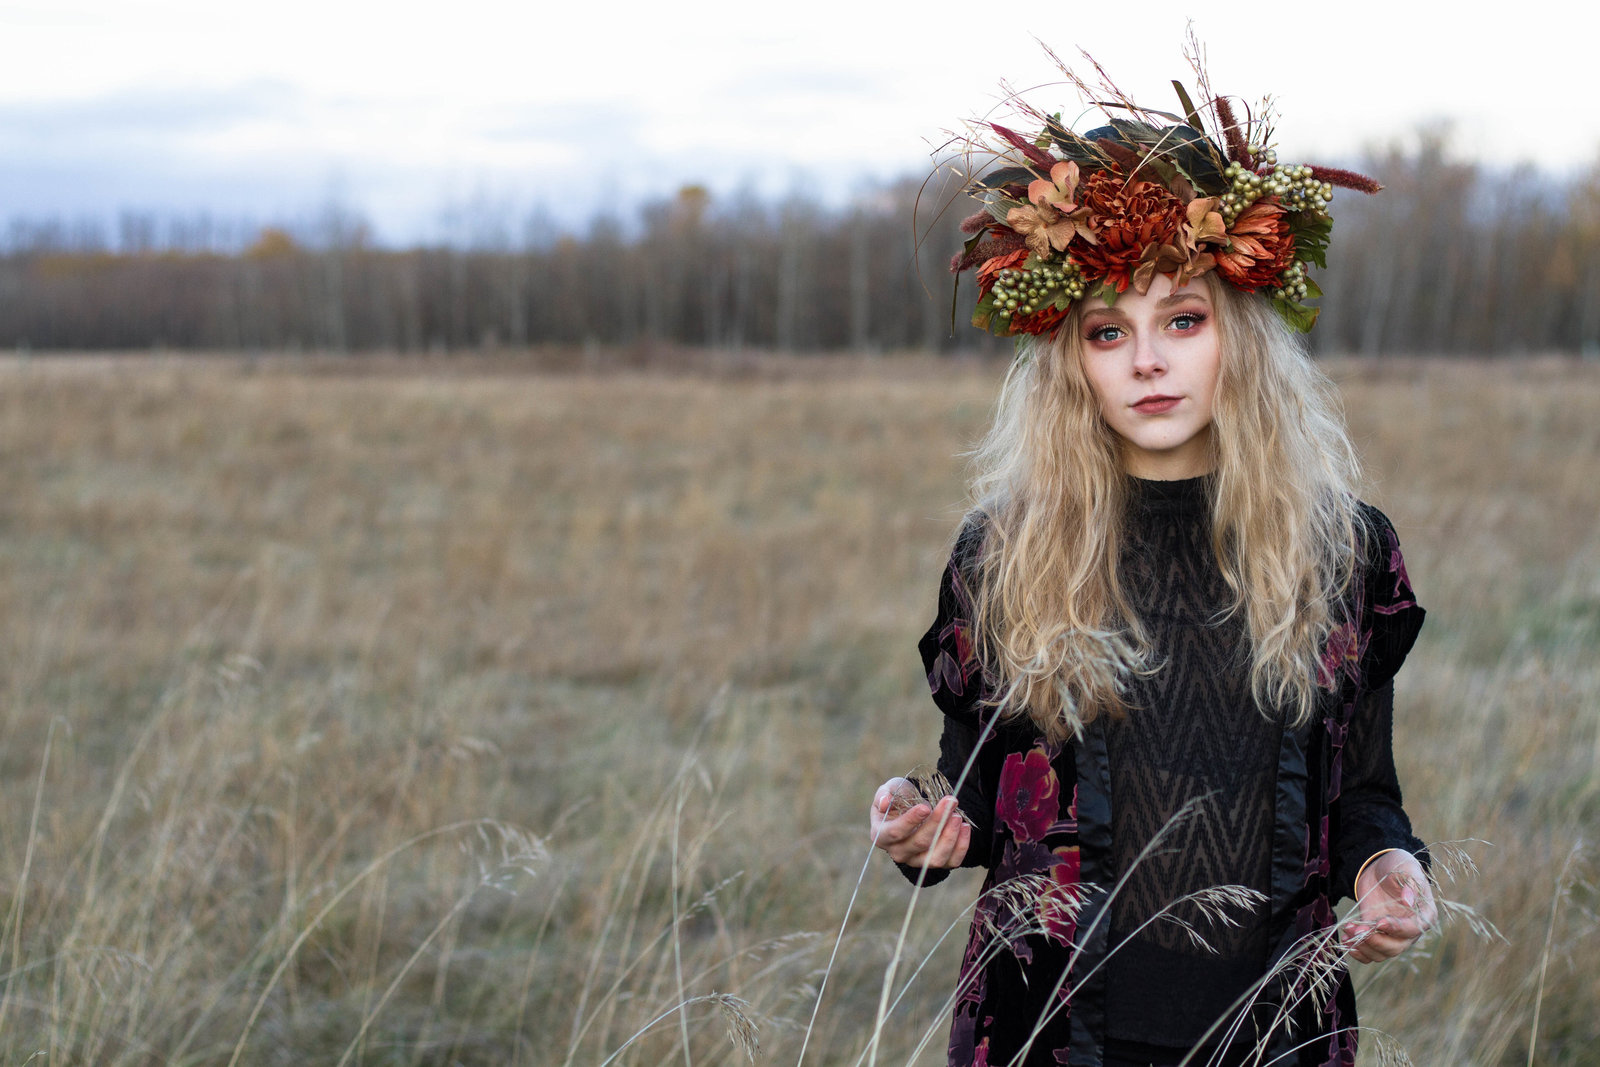 Two blondes embrace their inner fairy queen in a beautiful boho-inspired glamour session featuring hand-made flower crowns.